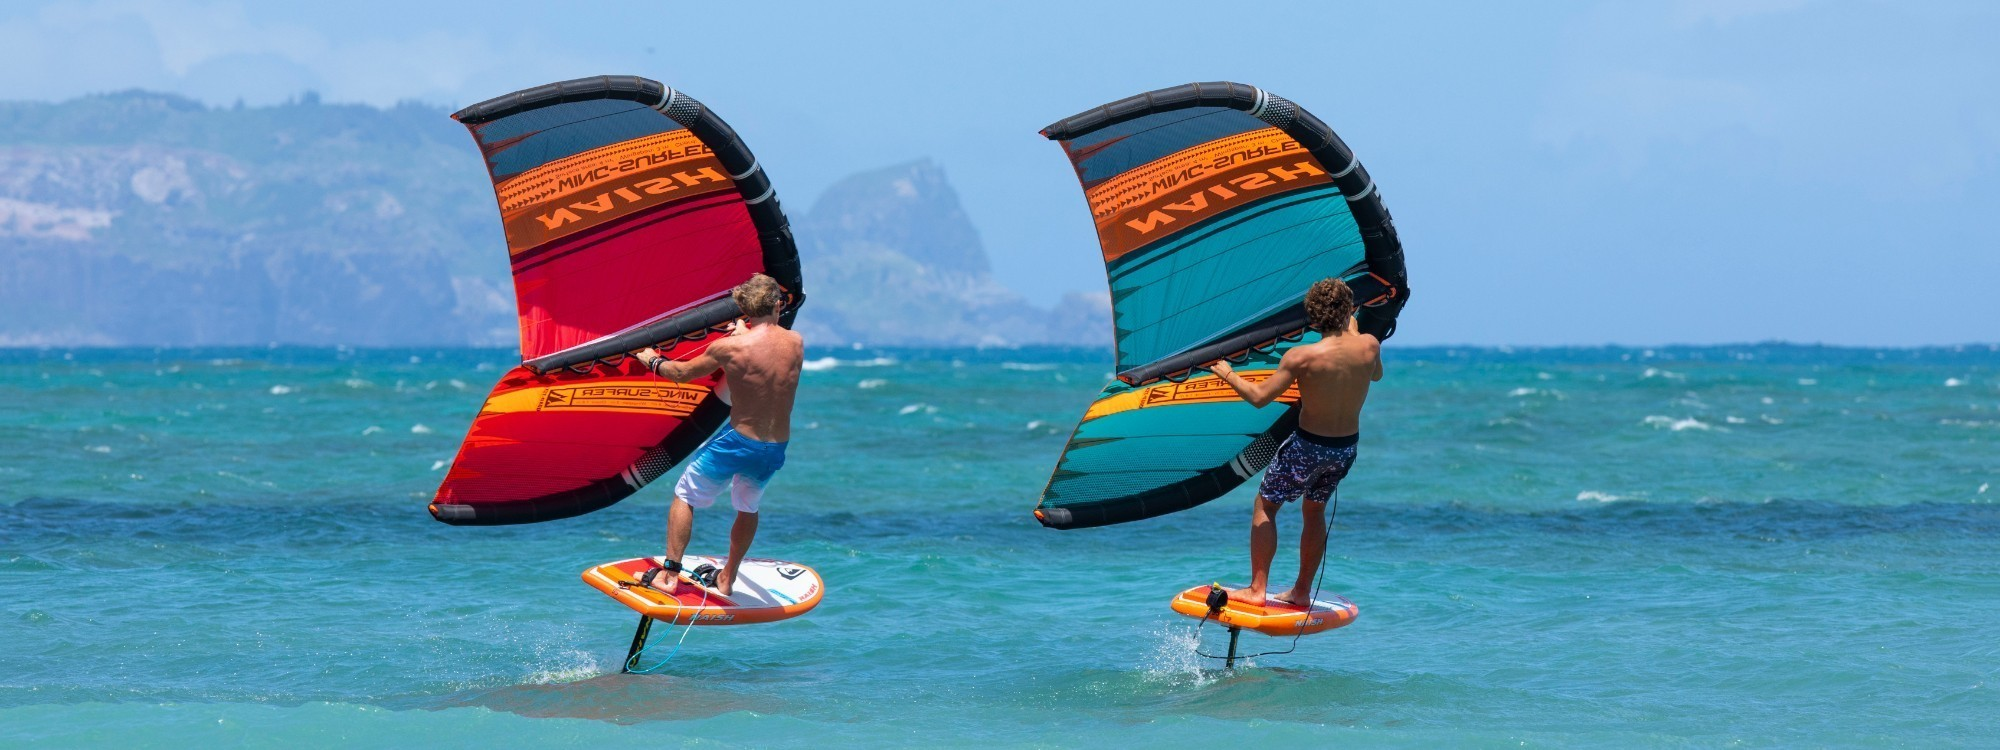 windsurf neopren kite